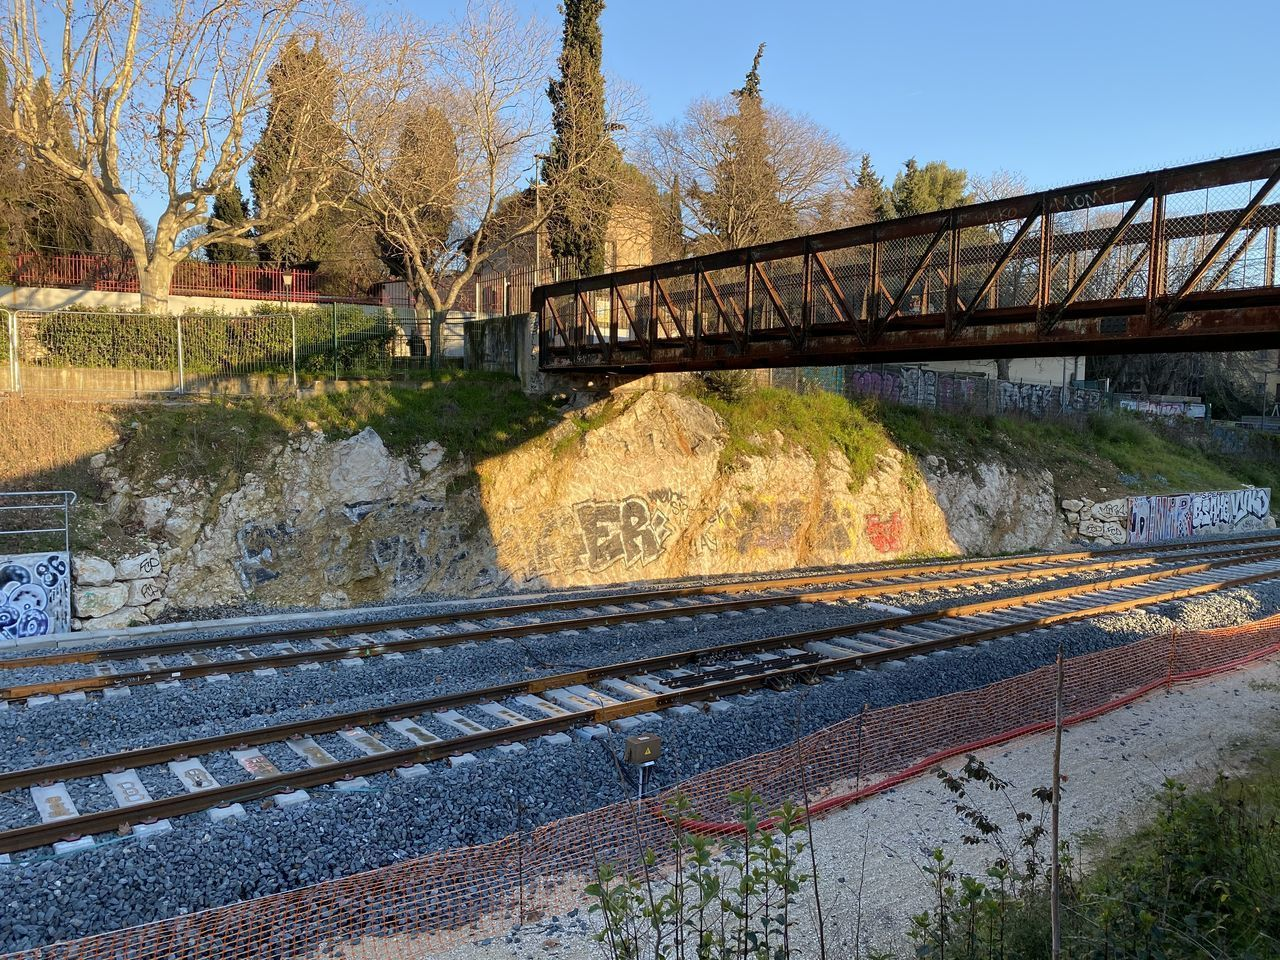 water, transportation, connection, bridge, architecture, bridge - man made structure, plant, tree, nature, river, no people, built structure, day, sky, outdoors, rail transportation, railing, scenics - nature, motion, flowing water, track, flowing